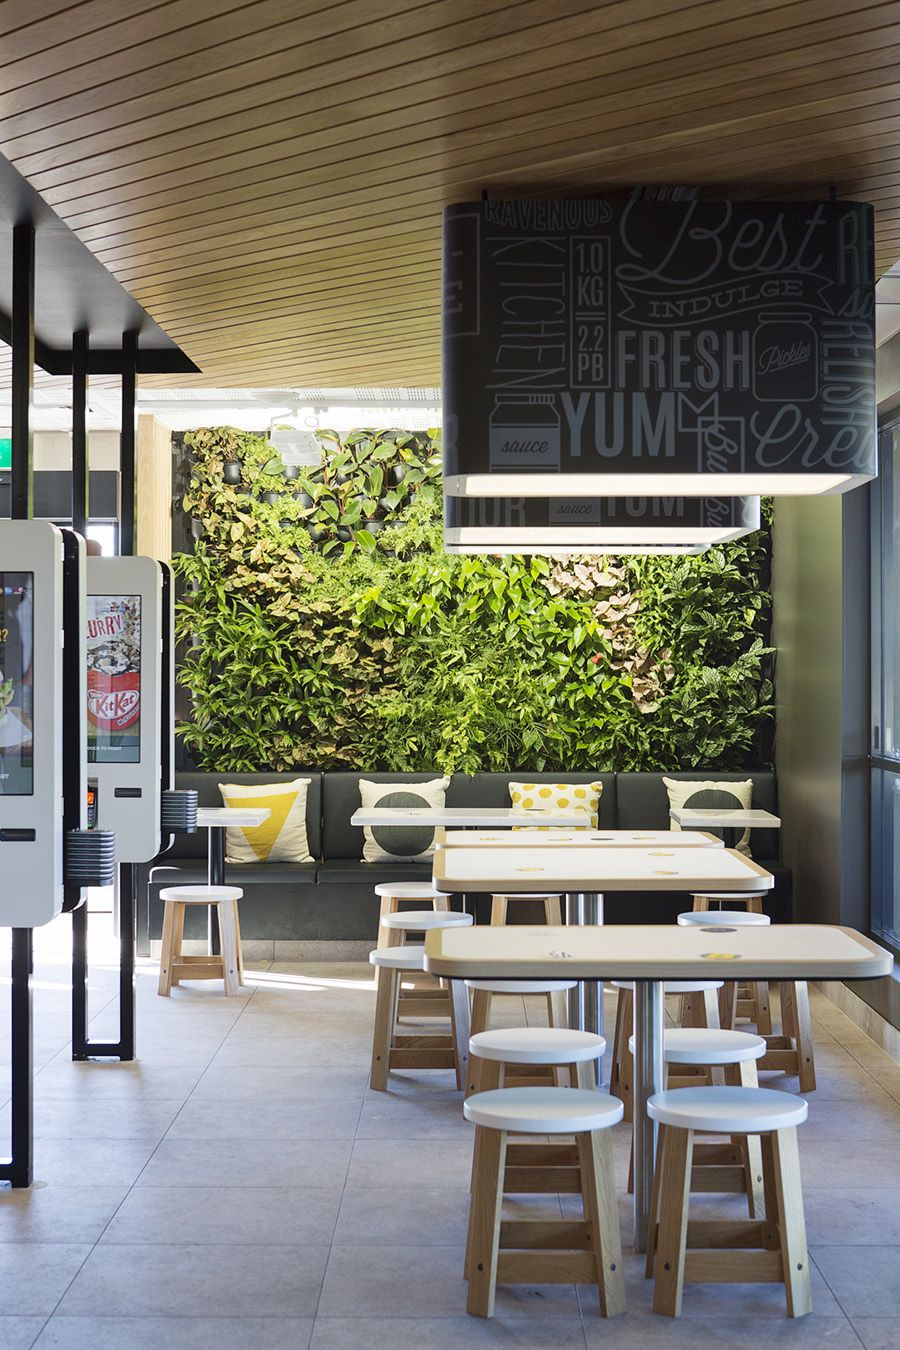 McDonalds Annerley - Brisbane - Vertikal | Office Designs | Pinterest